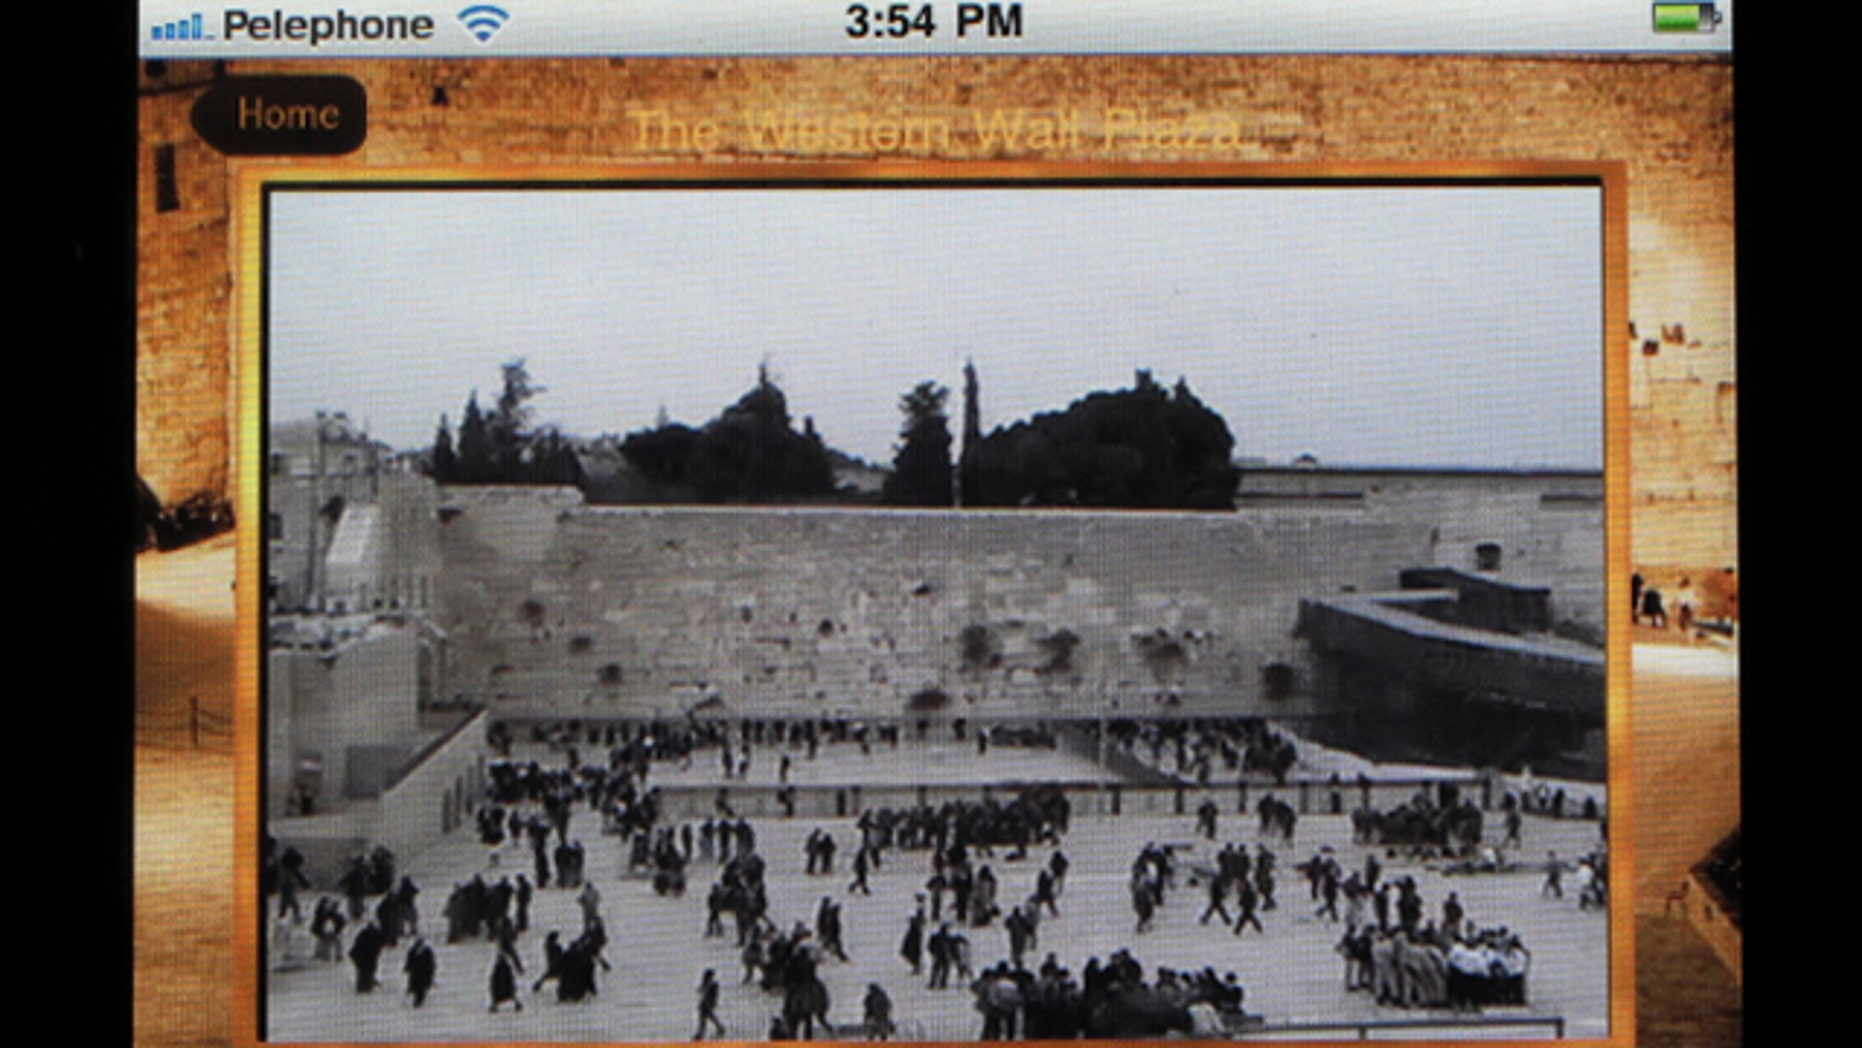 """A live webcam broadcast from the Western Wall in Jerusalem's Old City is seen on a new iPhone app, Wednesday, Dec. 29, 2010. Michal Ophir of the Israeli foundation that developed the app said Wednesday that it """"brings the Western Wall to every Jew in the world because it is the heart of the Jewish people."""""""